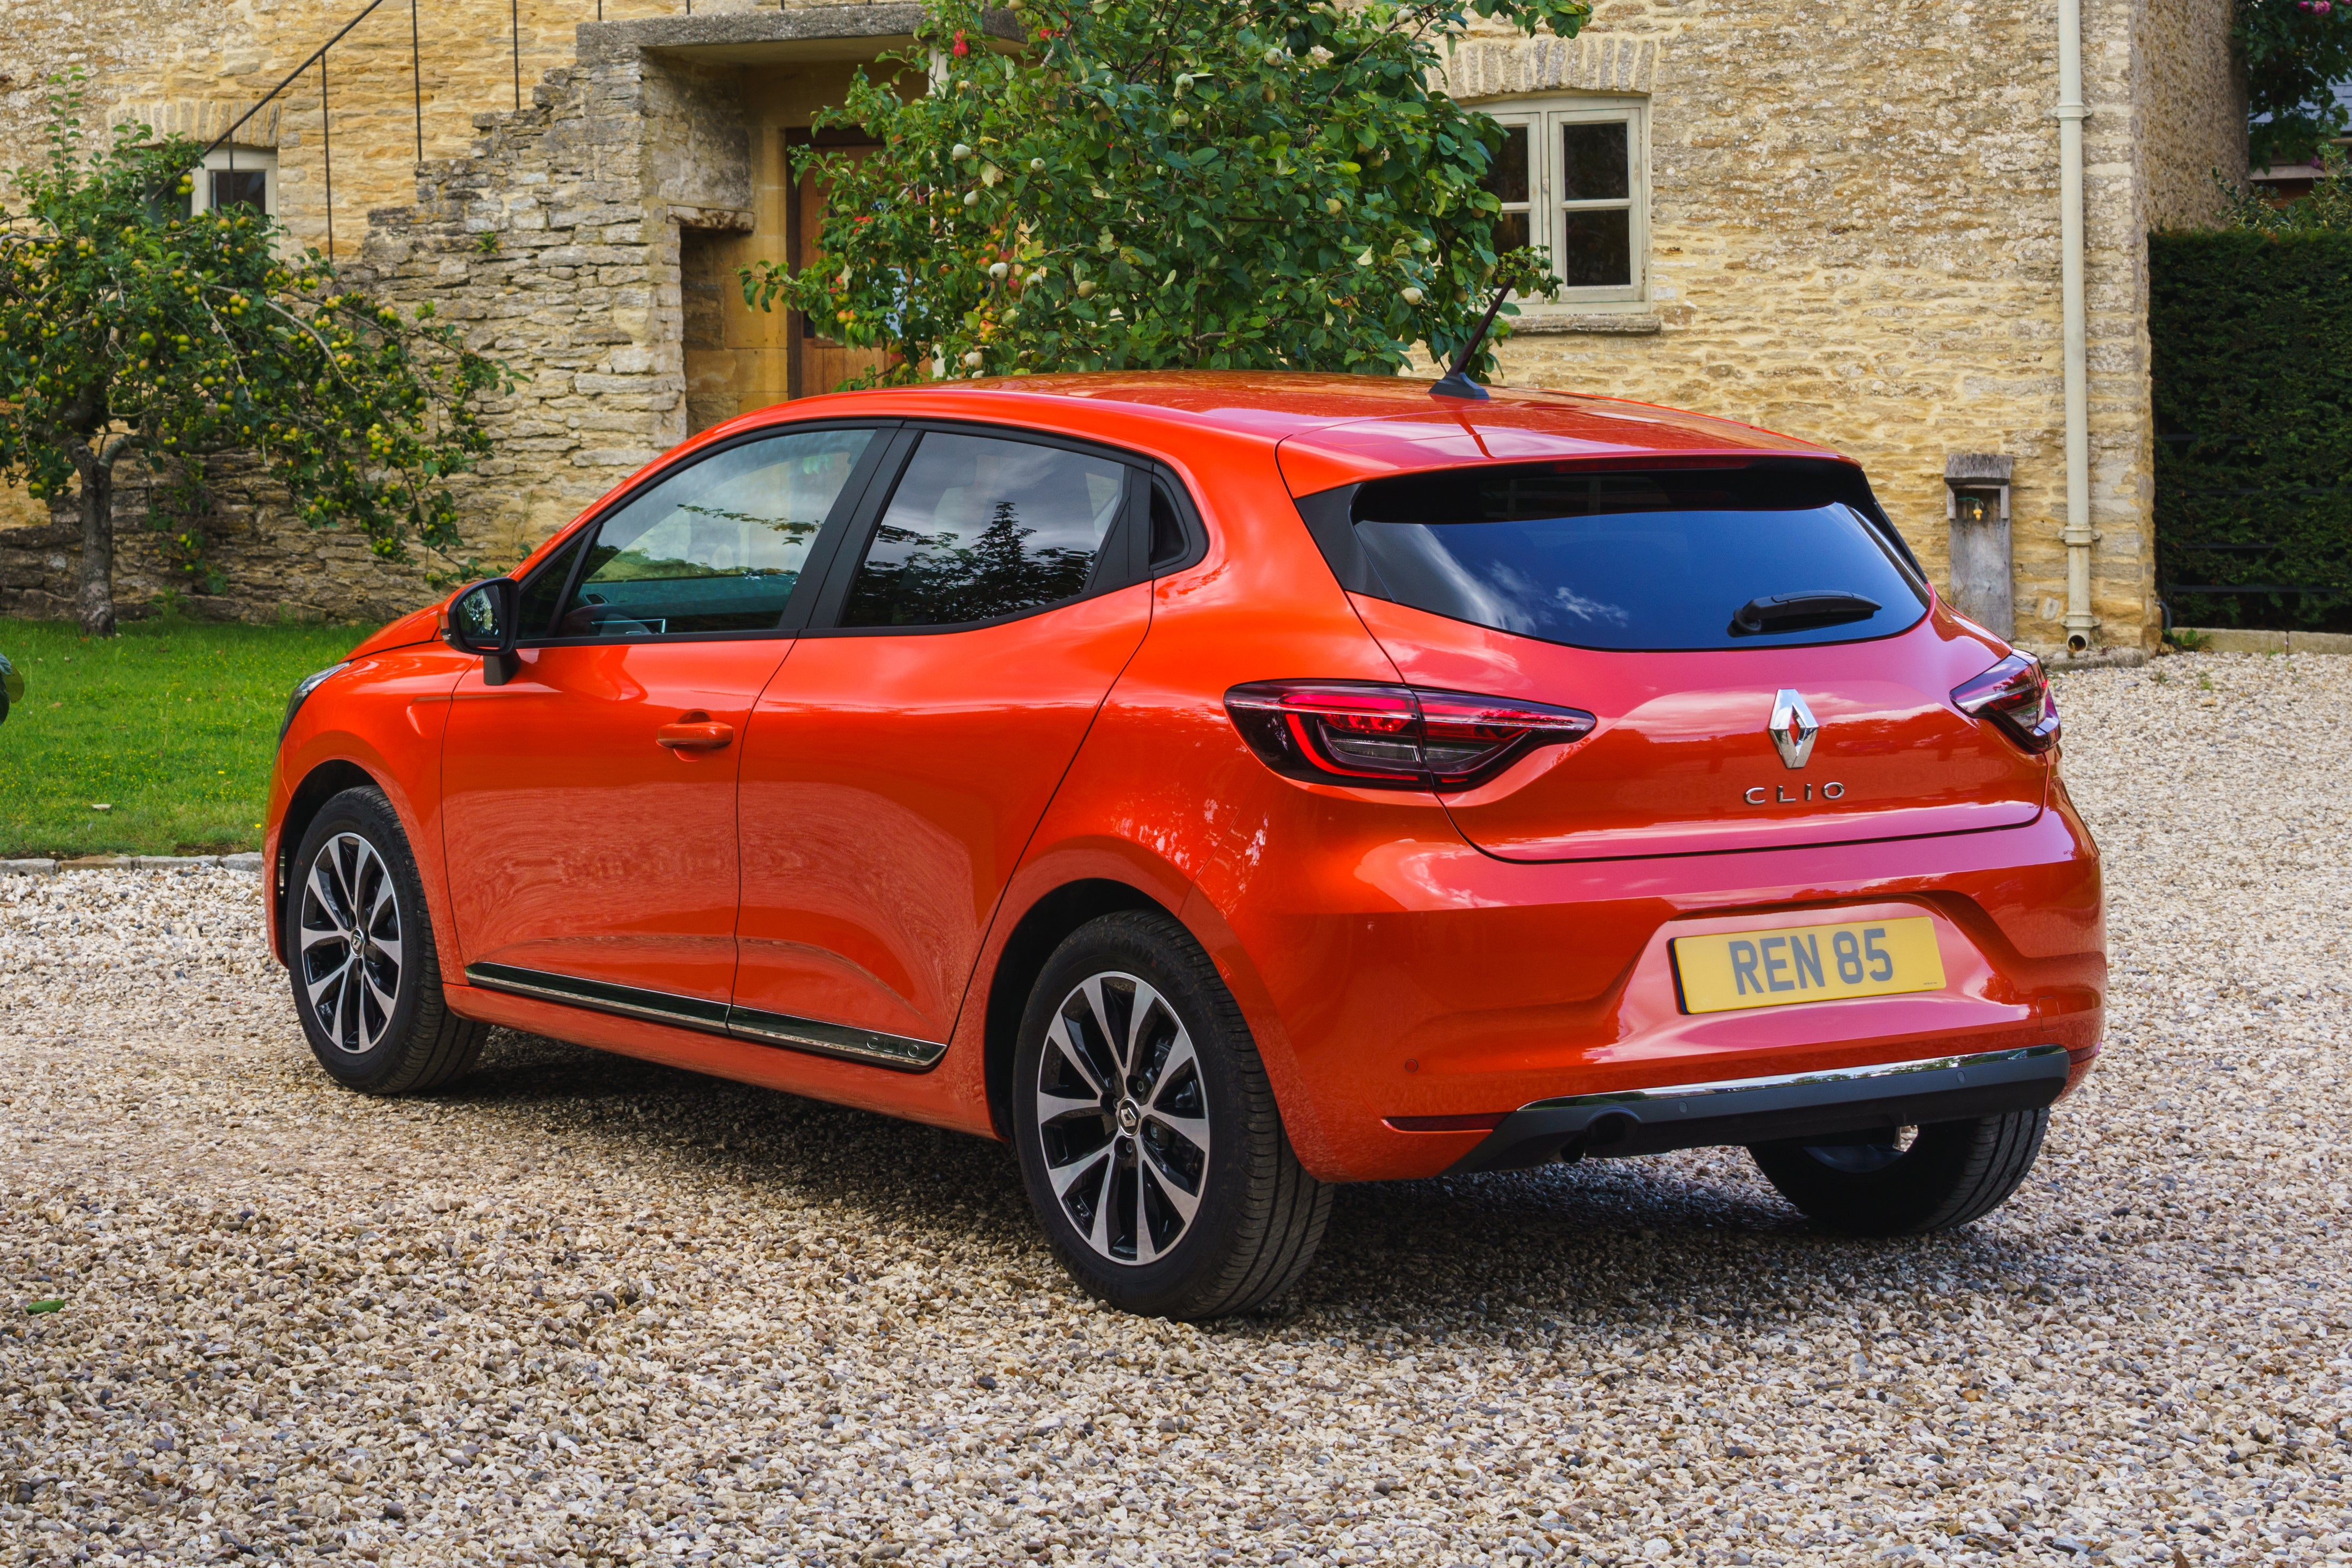 Renault Clio Left Side View